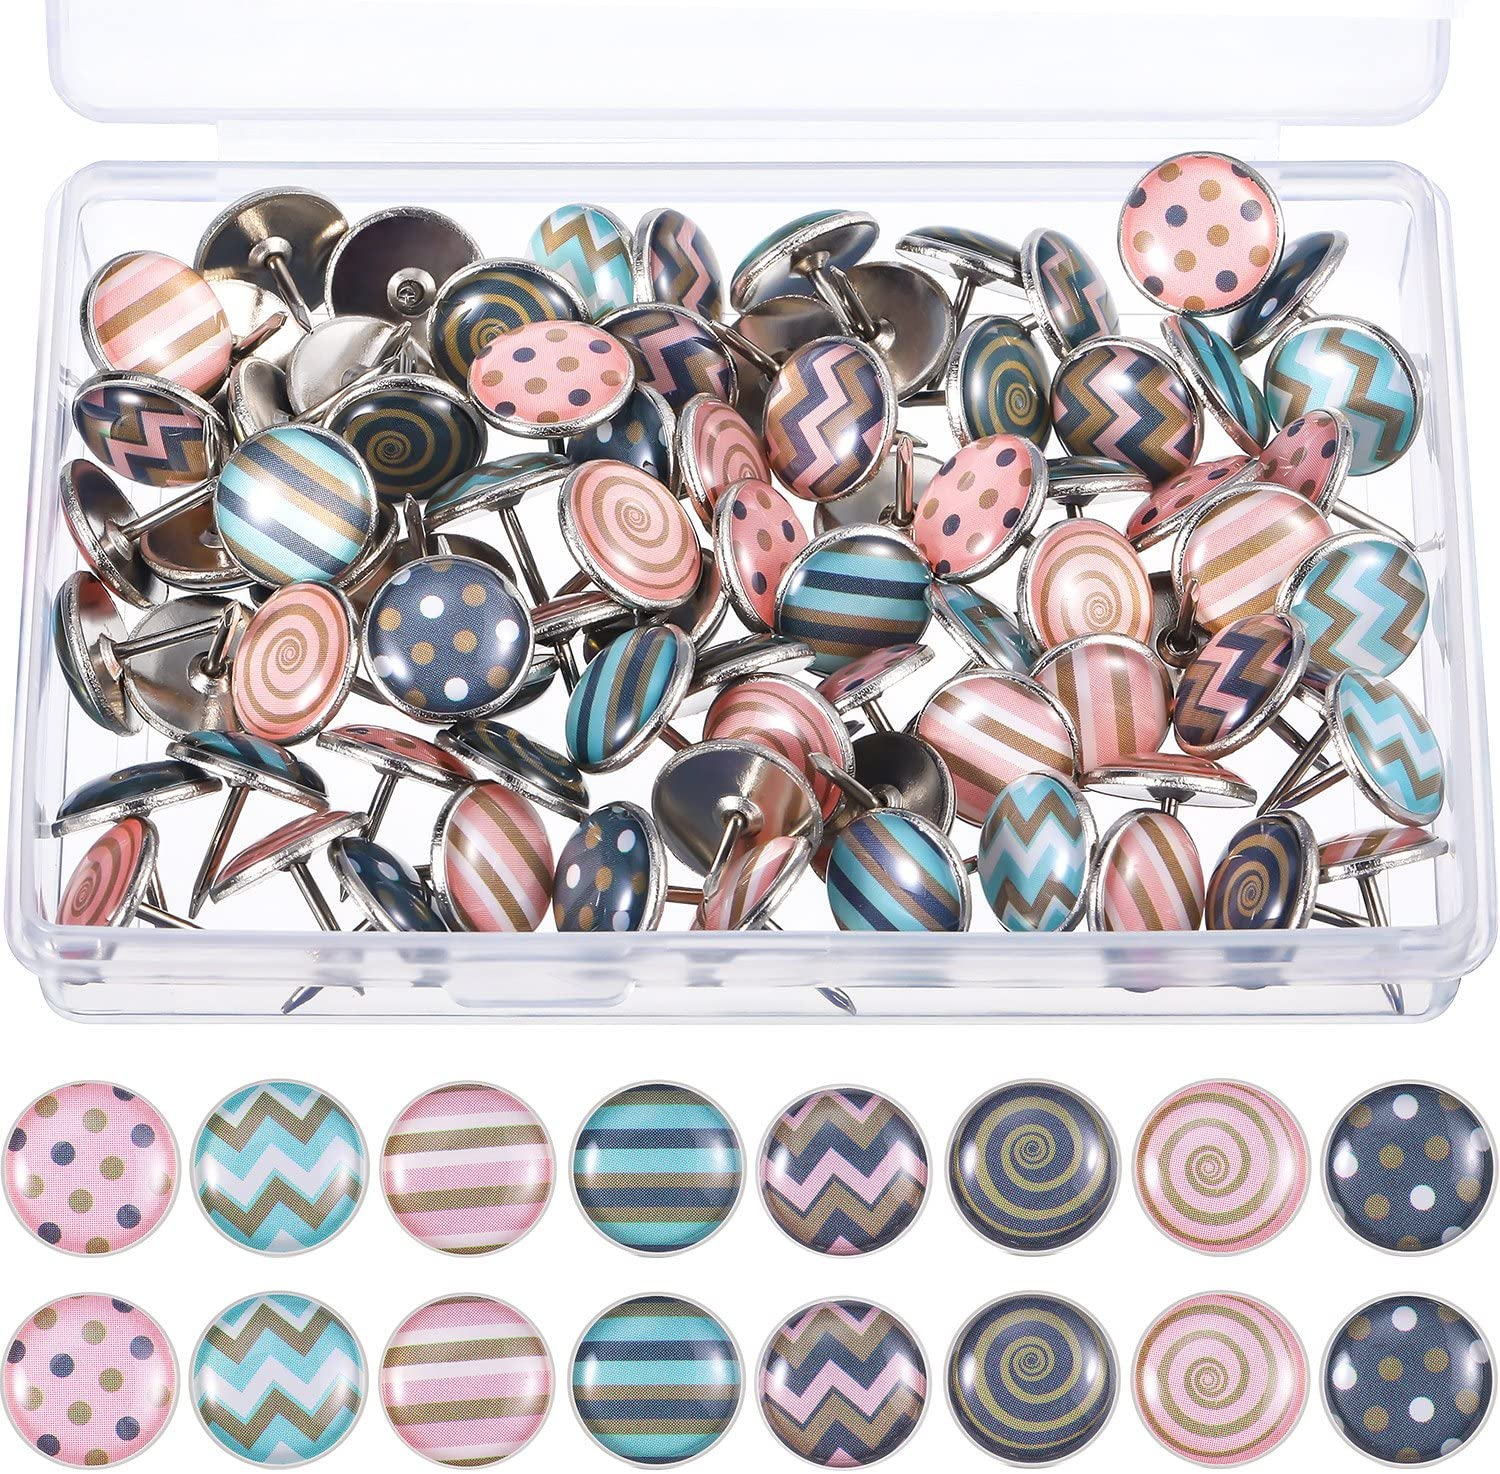 Creative Fashion Push Pins Decorative Thumbtacks for Wall Maps, Photos, Bulletin Board or Cork Boards, 8 Different Patterns, 80 Pieces (Pink)